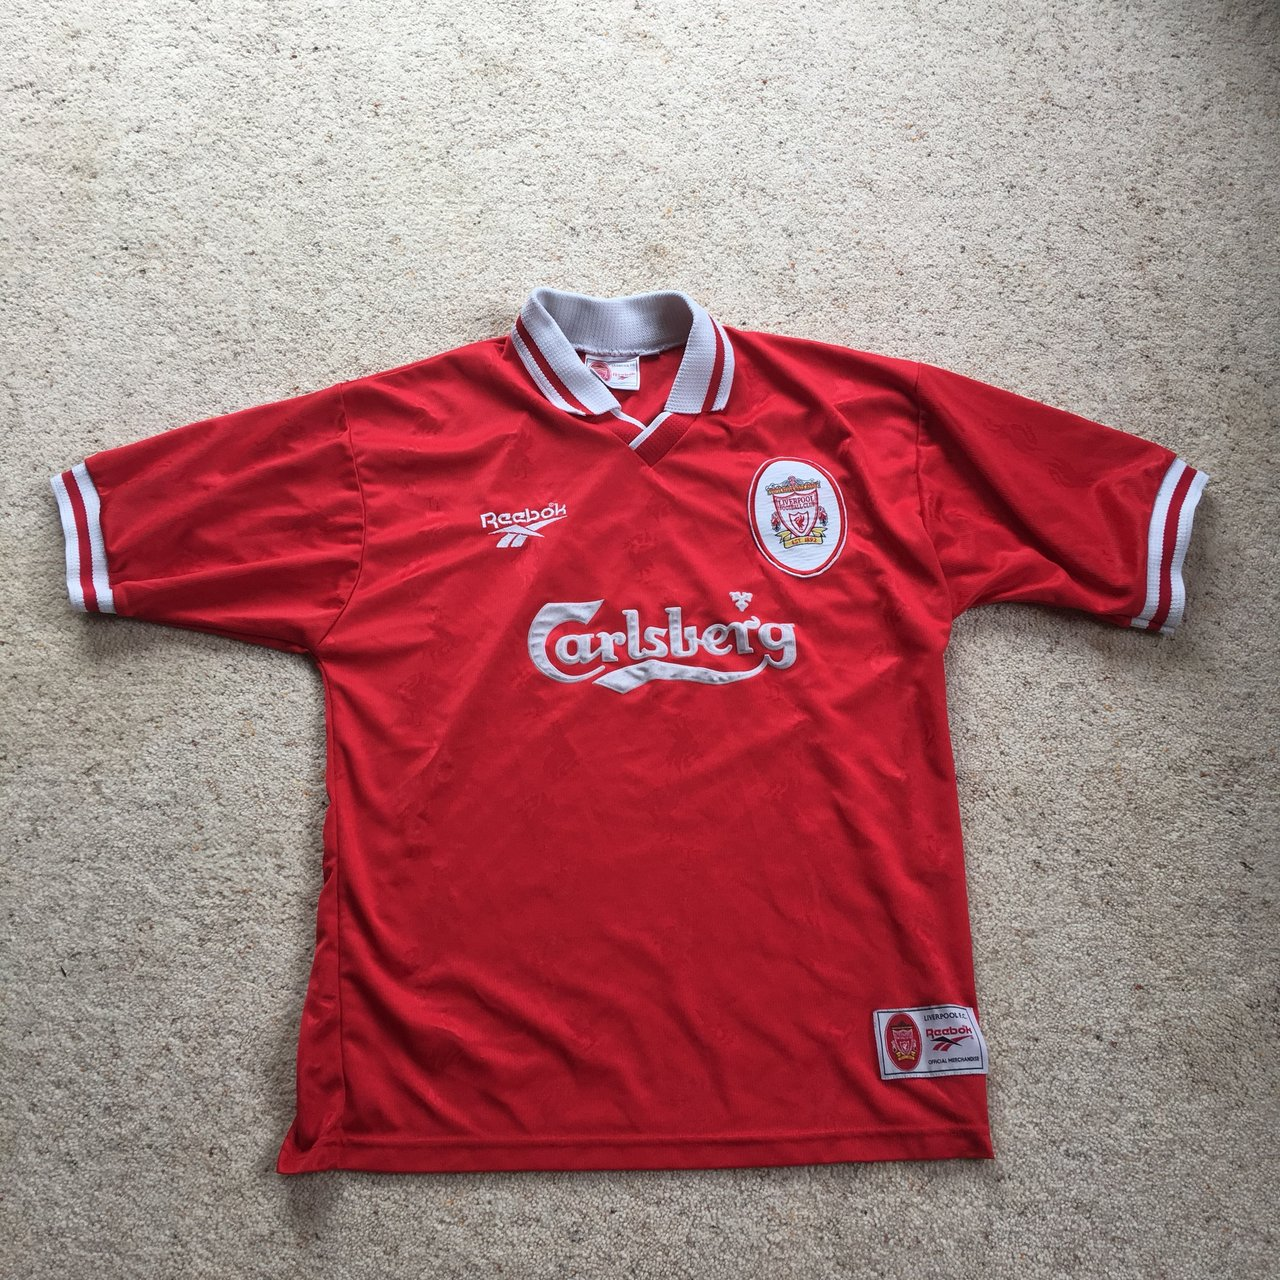 bebef217e7f Retro Liverpool Football Shirts – EDGE Engineering and Consulting ...